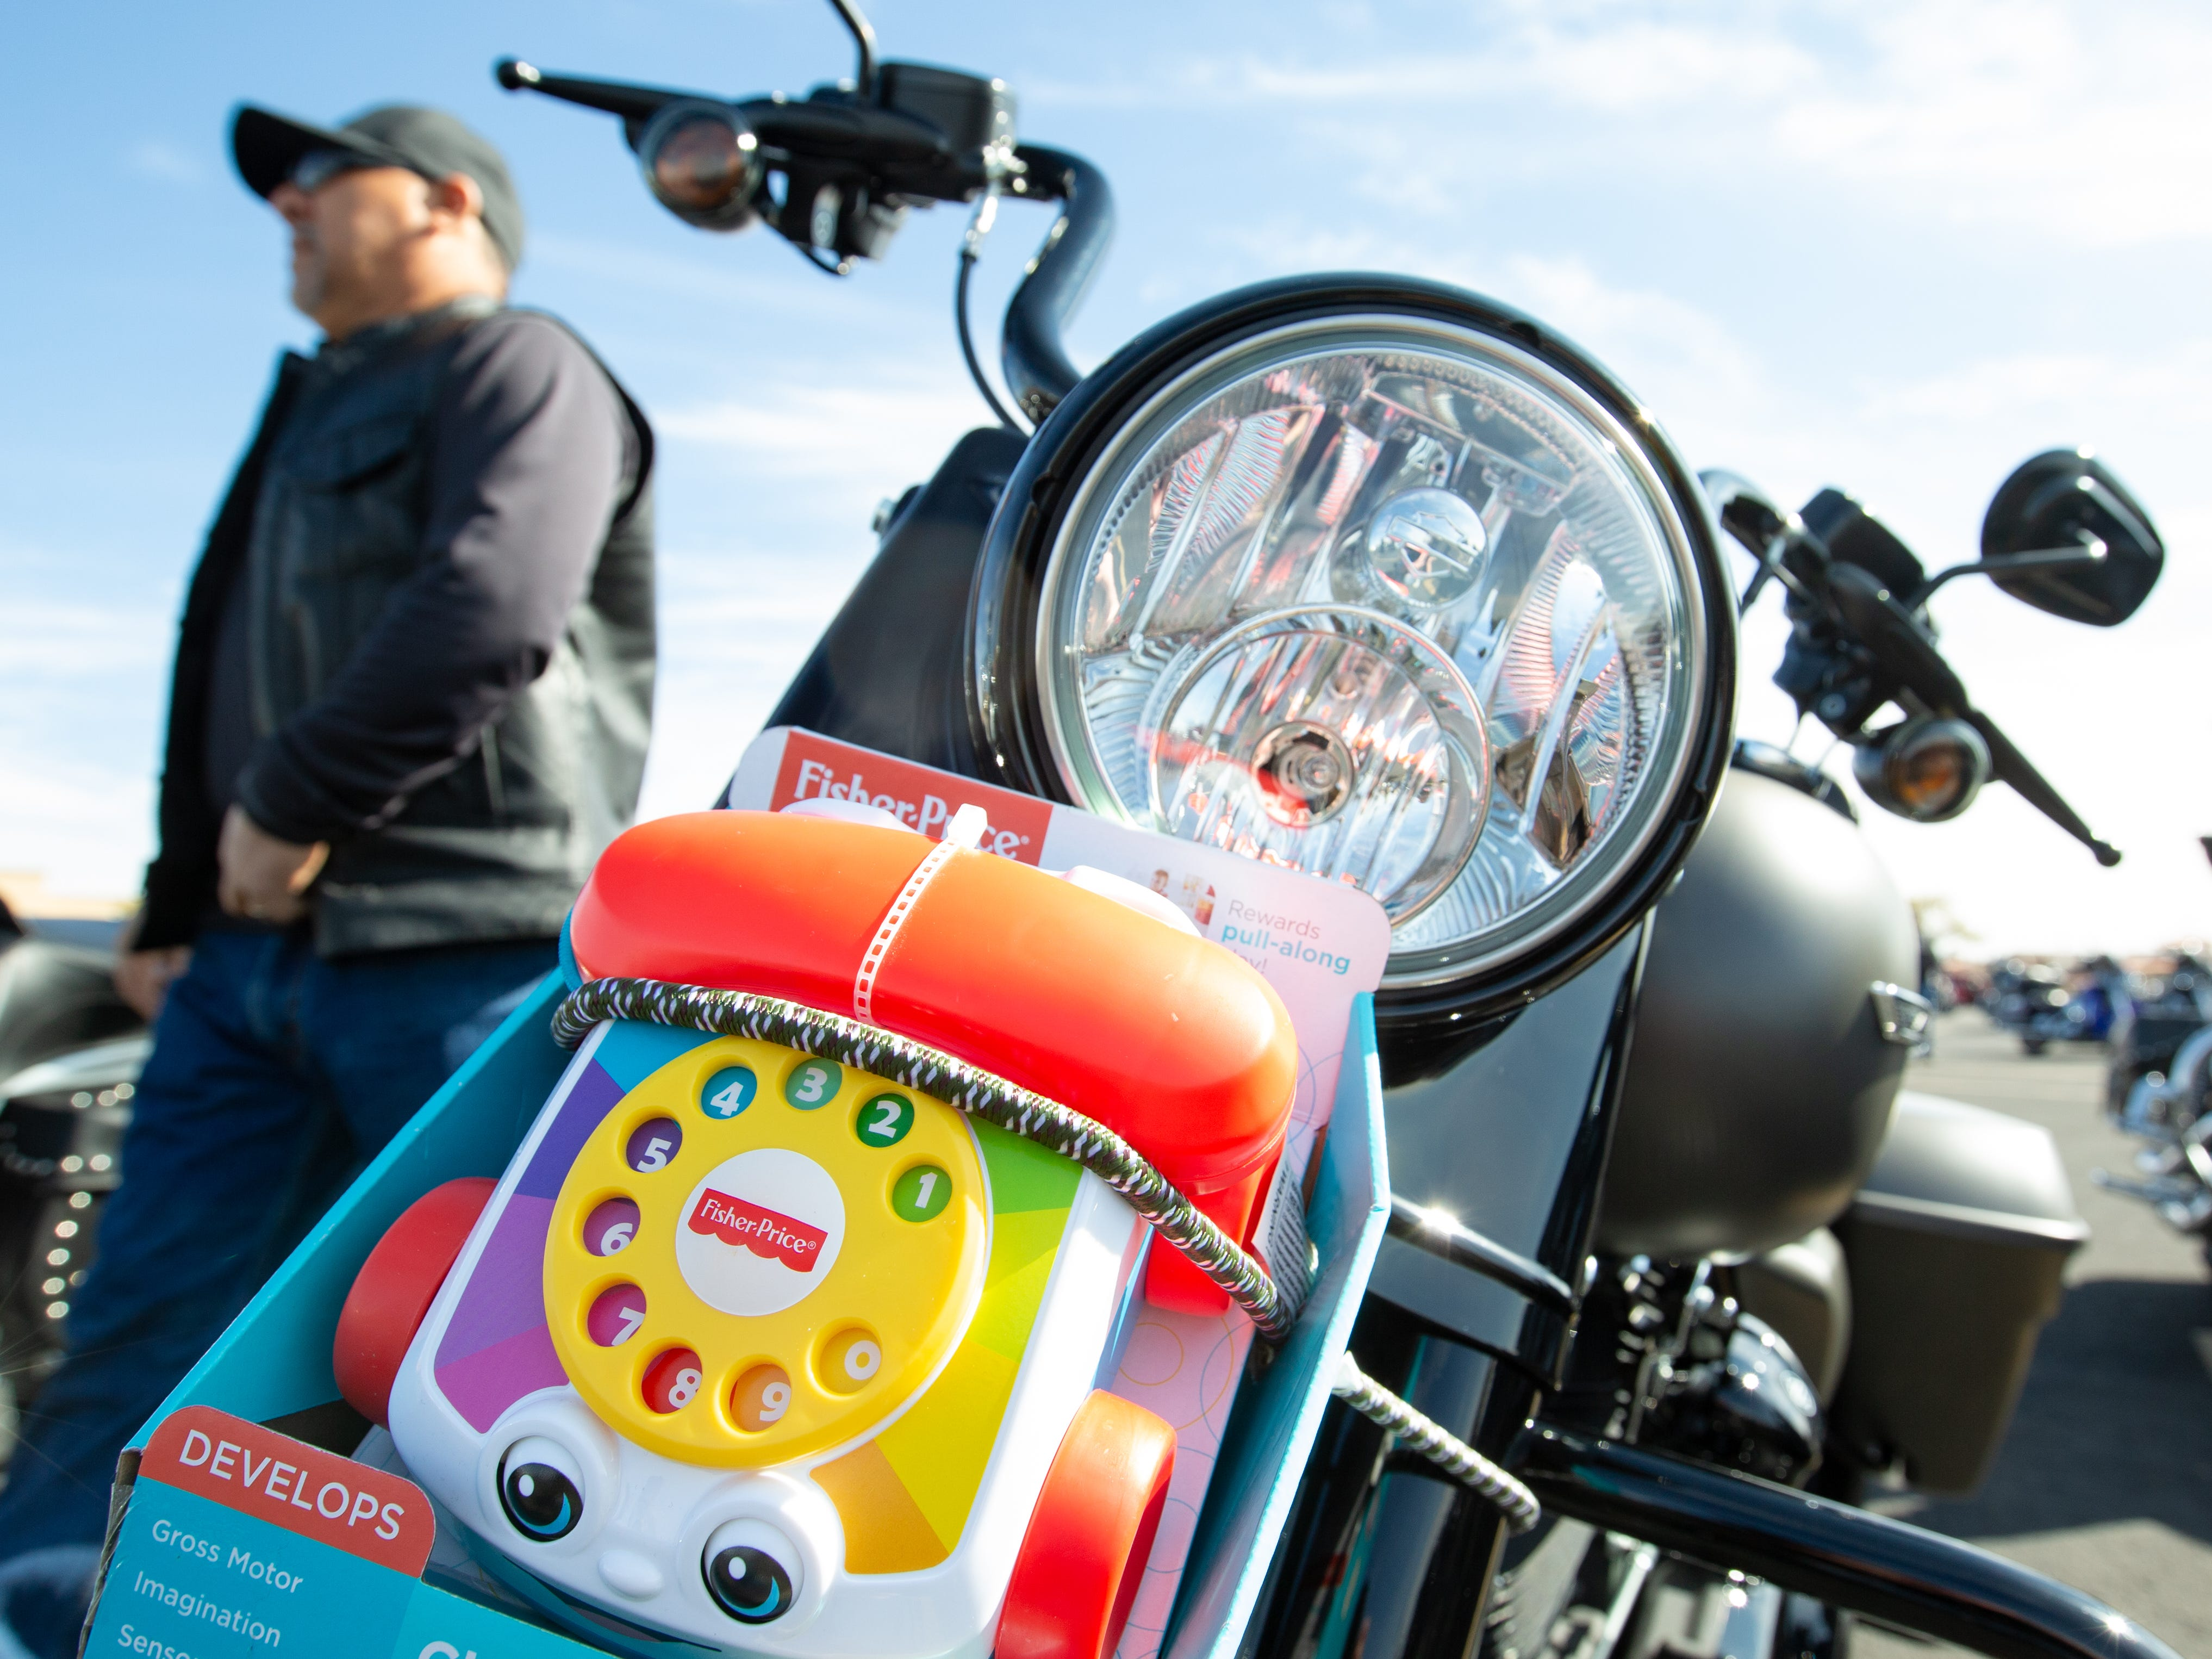 A toy is strapped to the front of a bike on Sunday Nov. 18, 2018, during the 38th annual Toys for Kids Motorcycle Parade to benefit children in southern New Mexico. Hundreds of motorcyclist participated in the event. Al Marrujo, of Las Cruces, is pictured walking in the background.